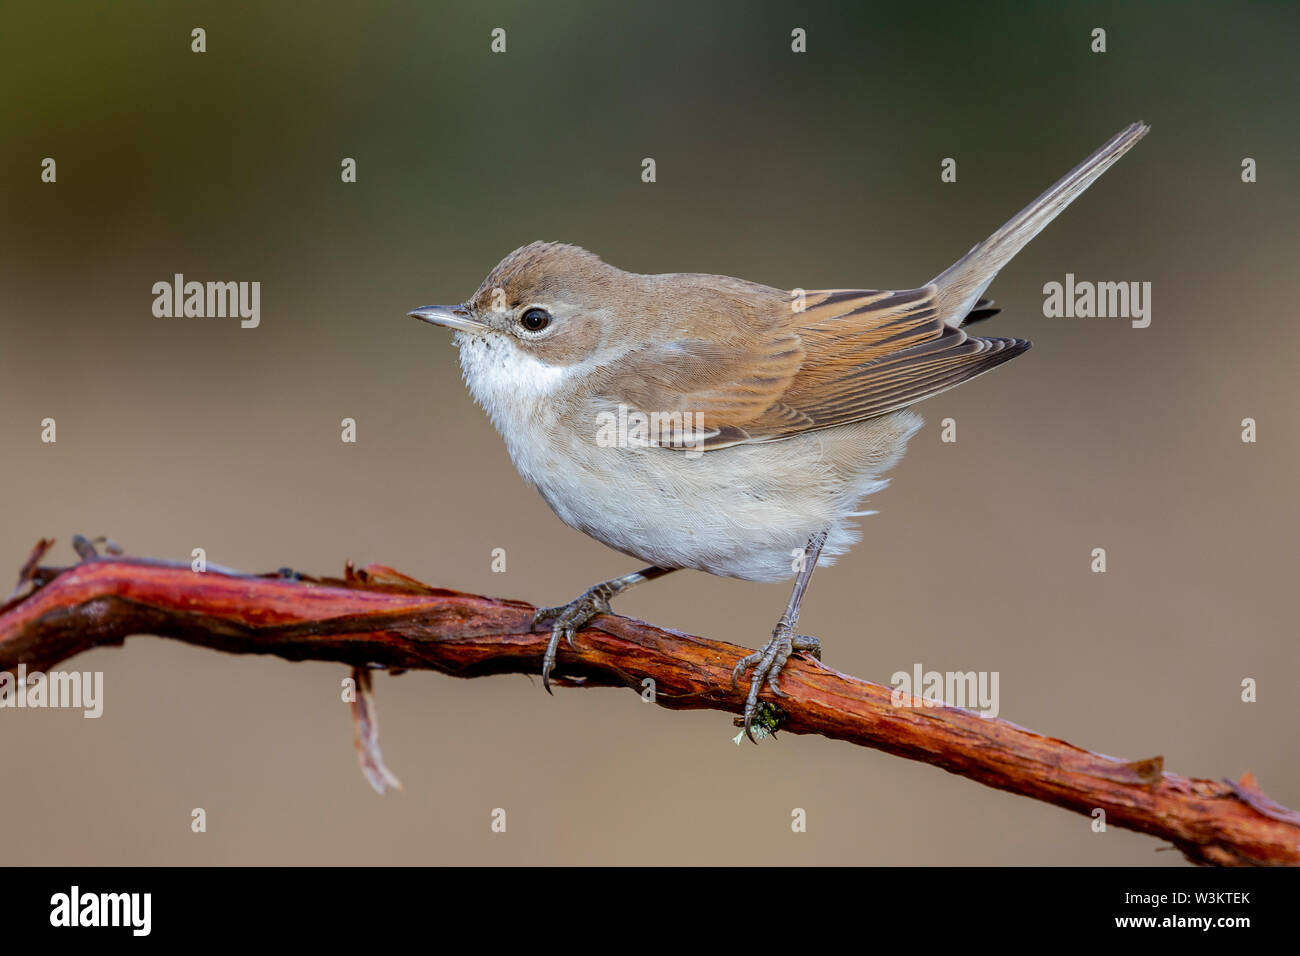 White Throat (Sylvia communis) perched on a branch in the wild nature. - Stock Image